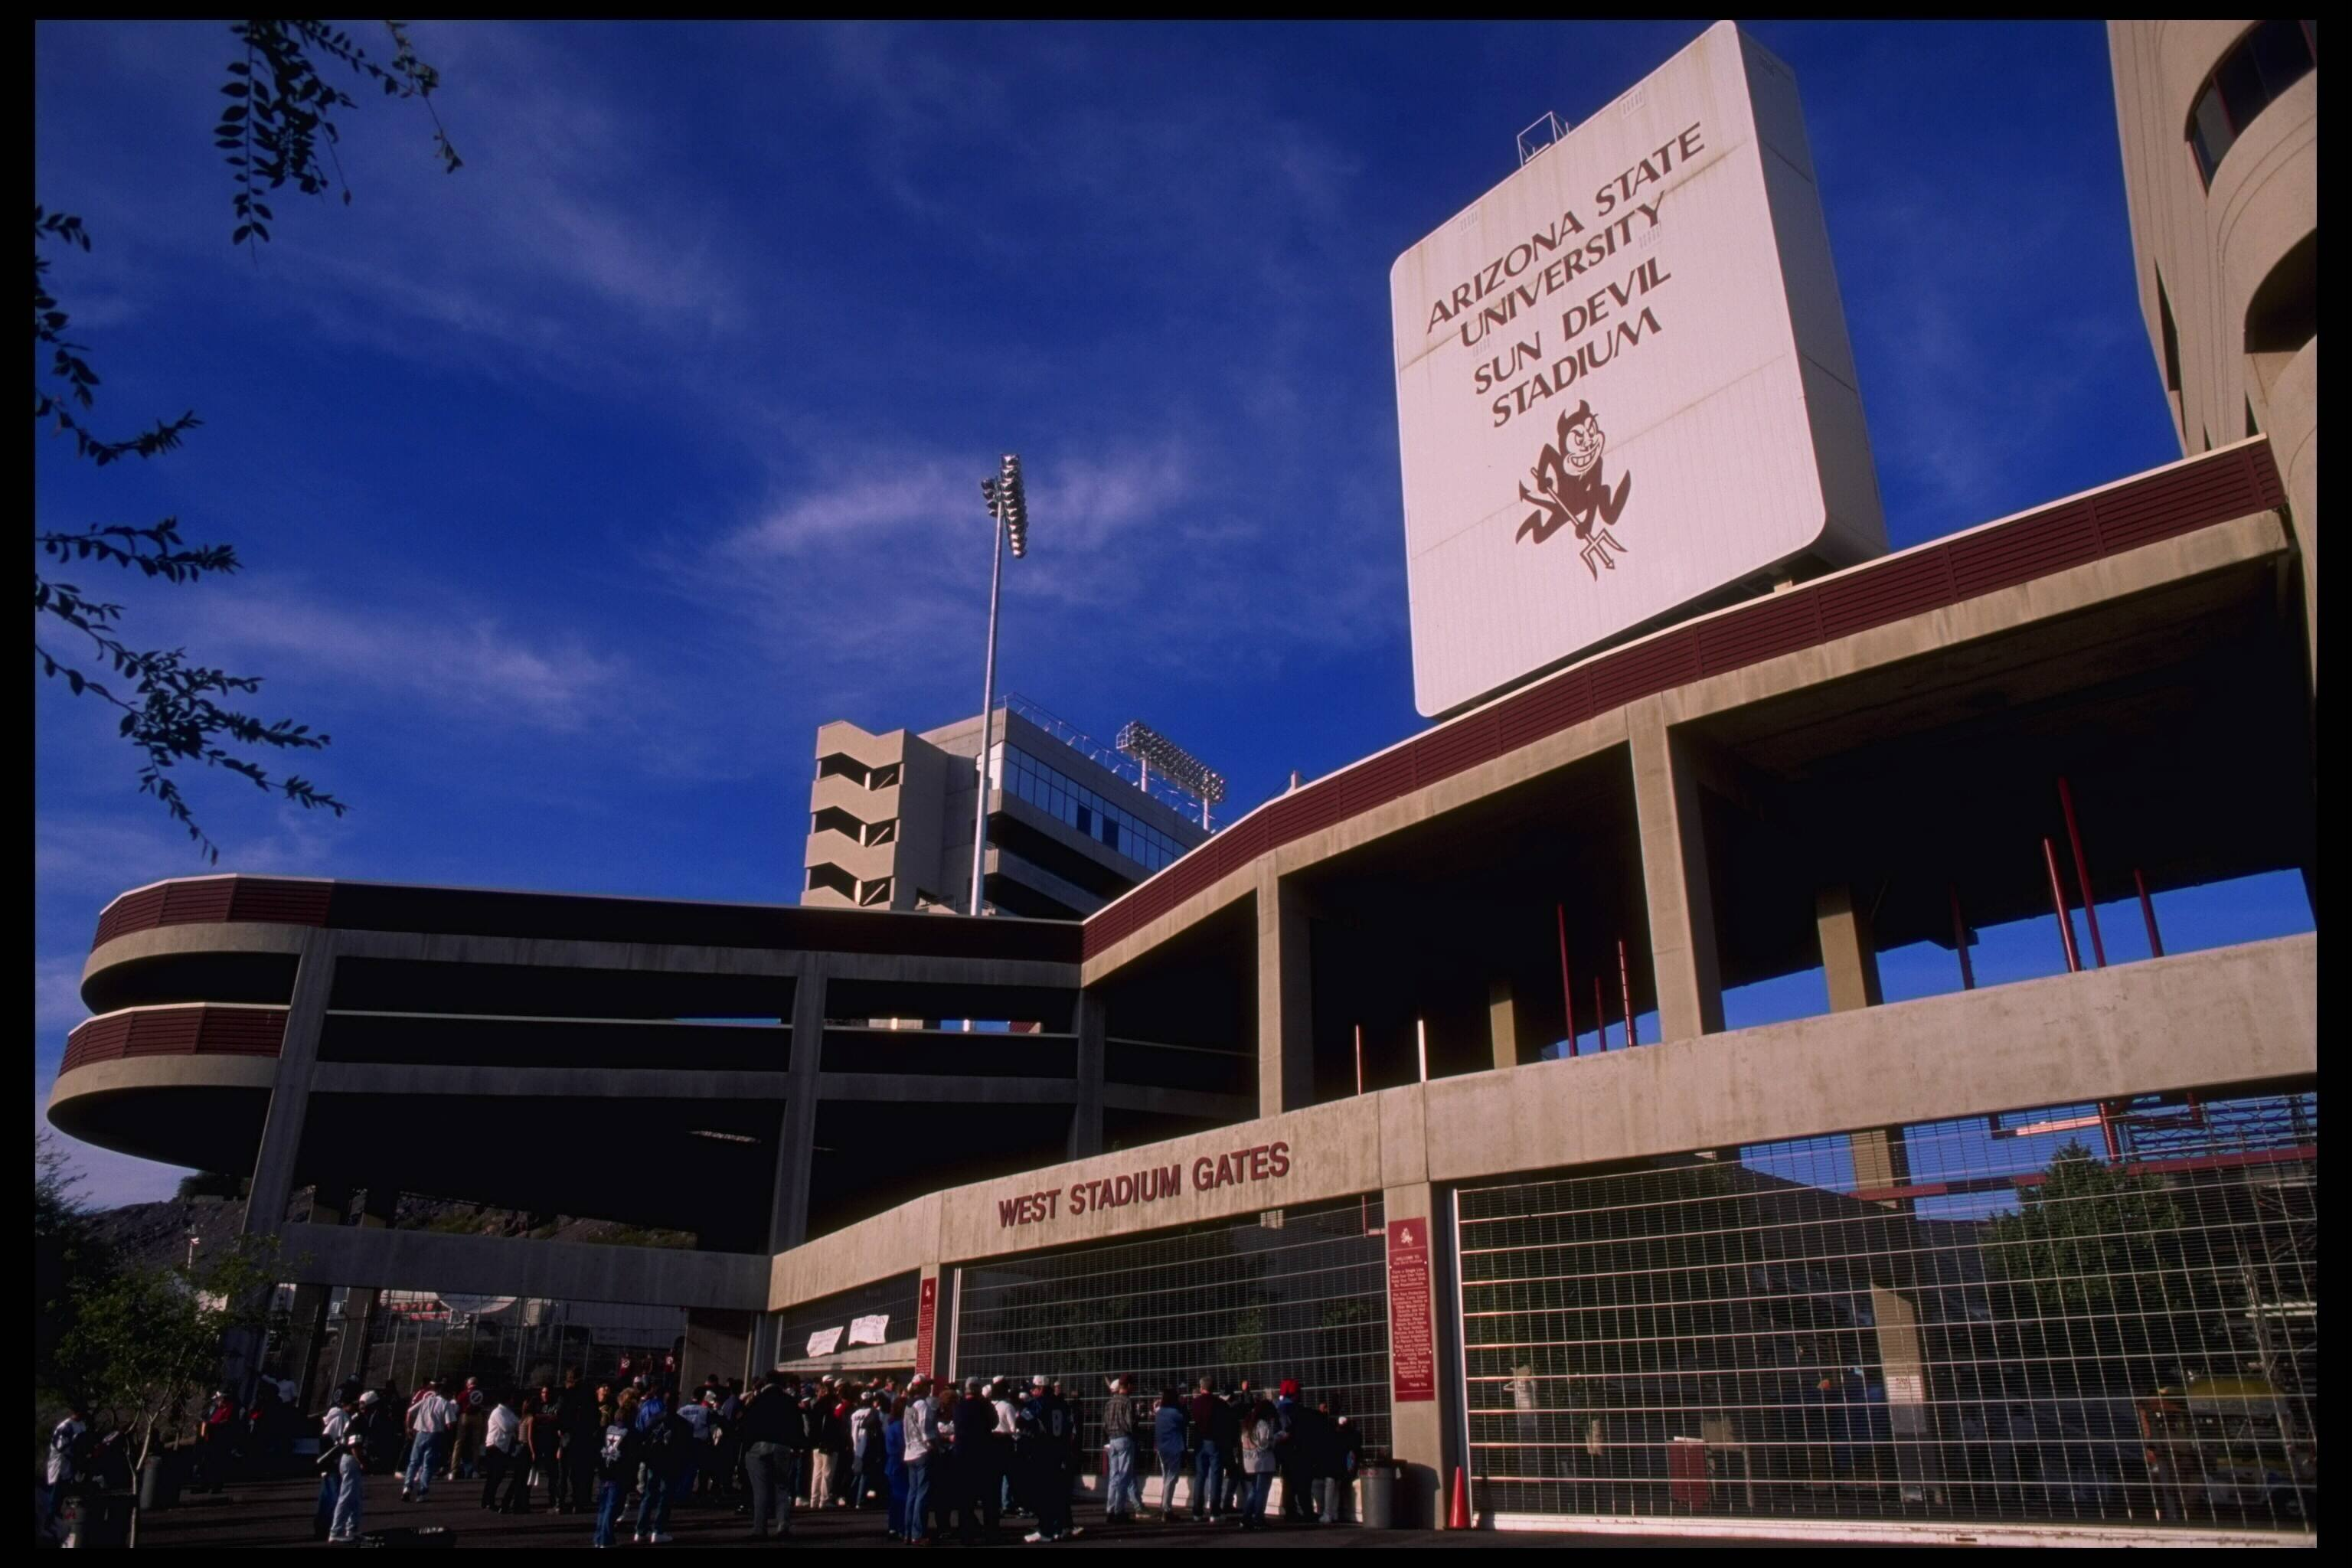 Sun Devil Stadium in Tempe, Arizona